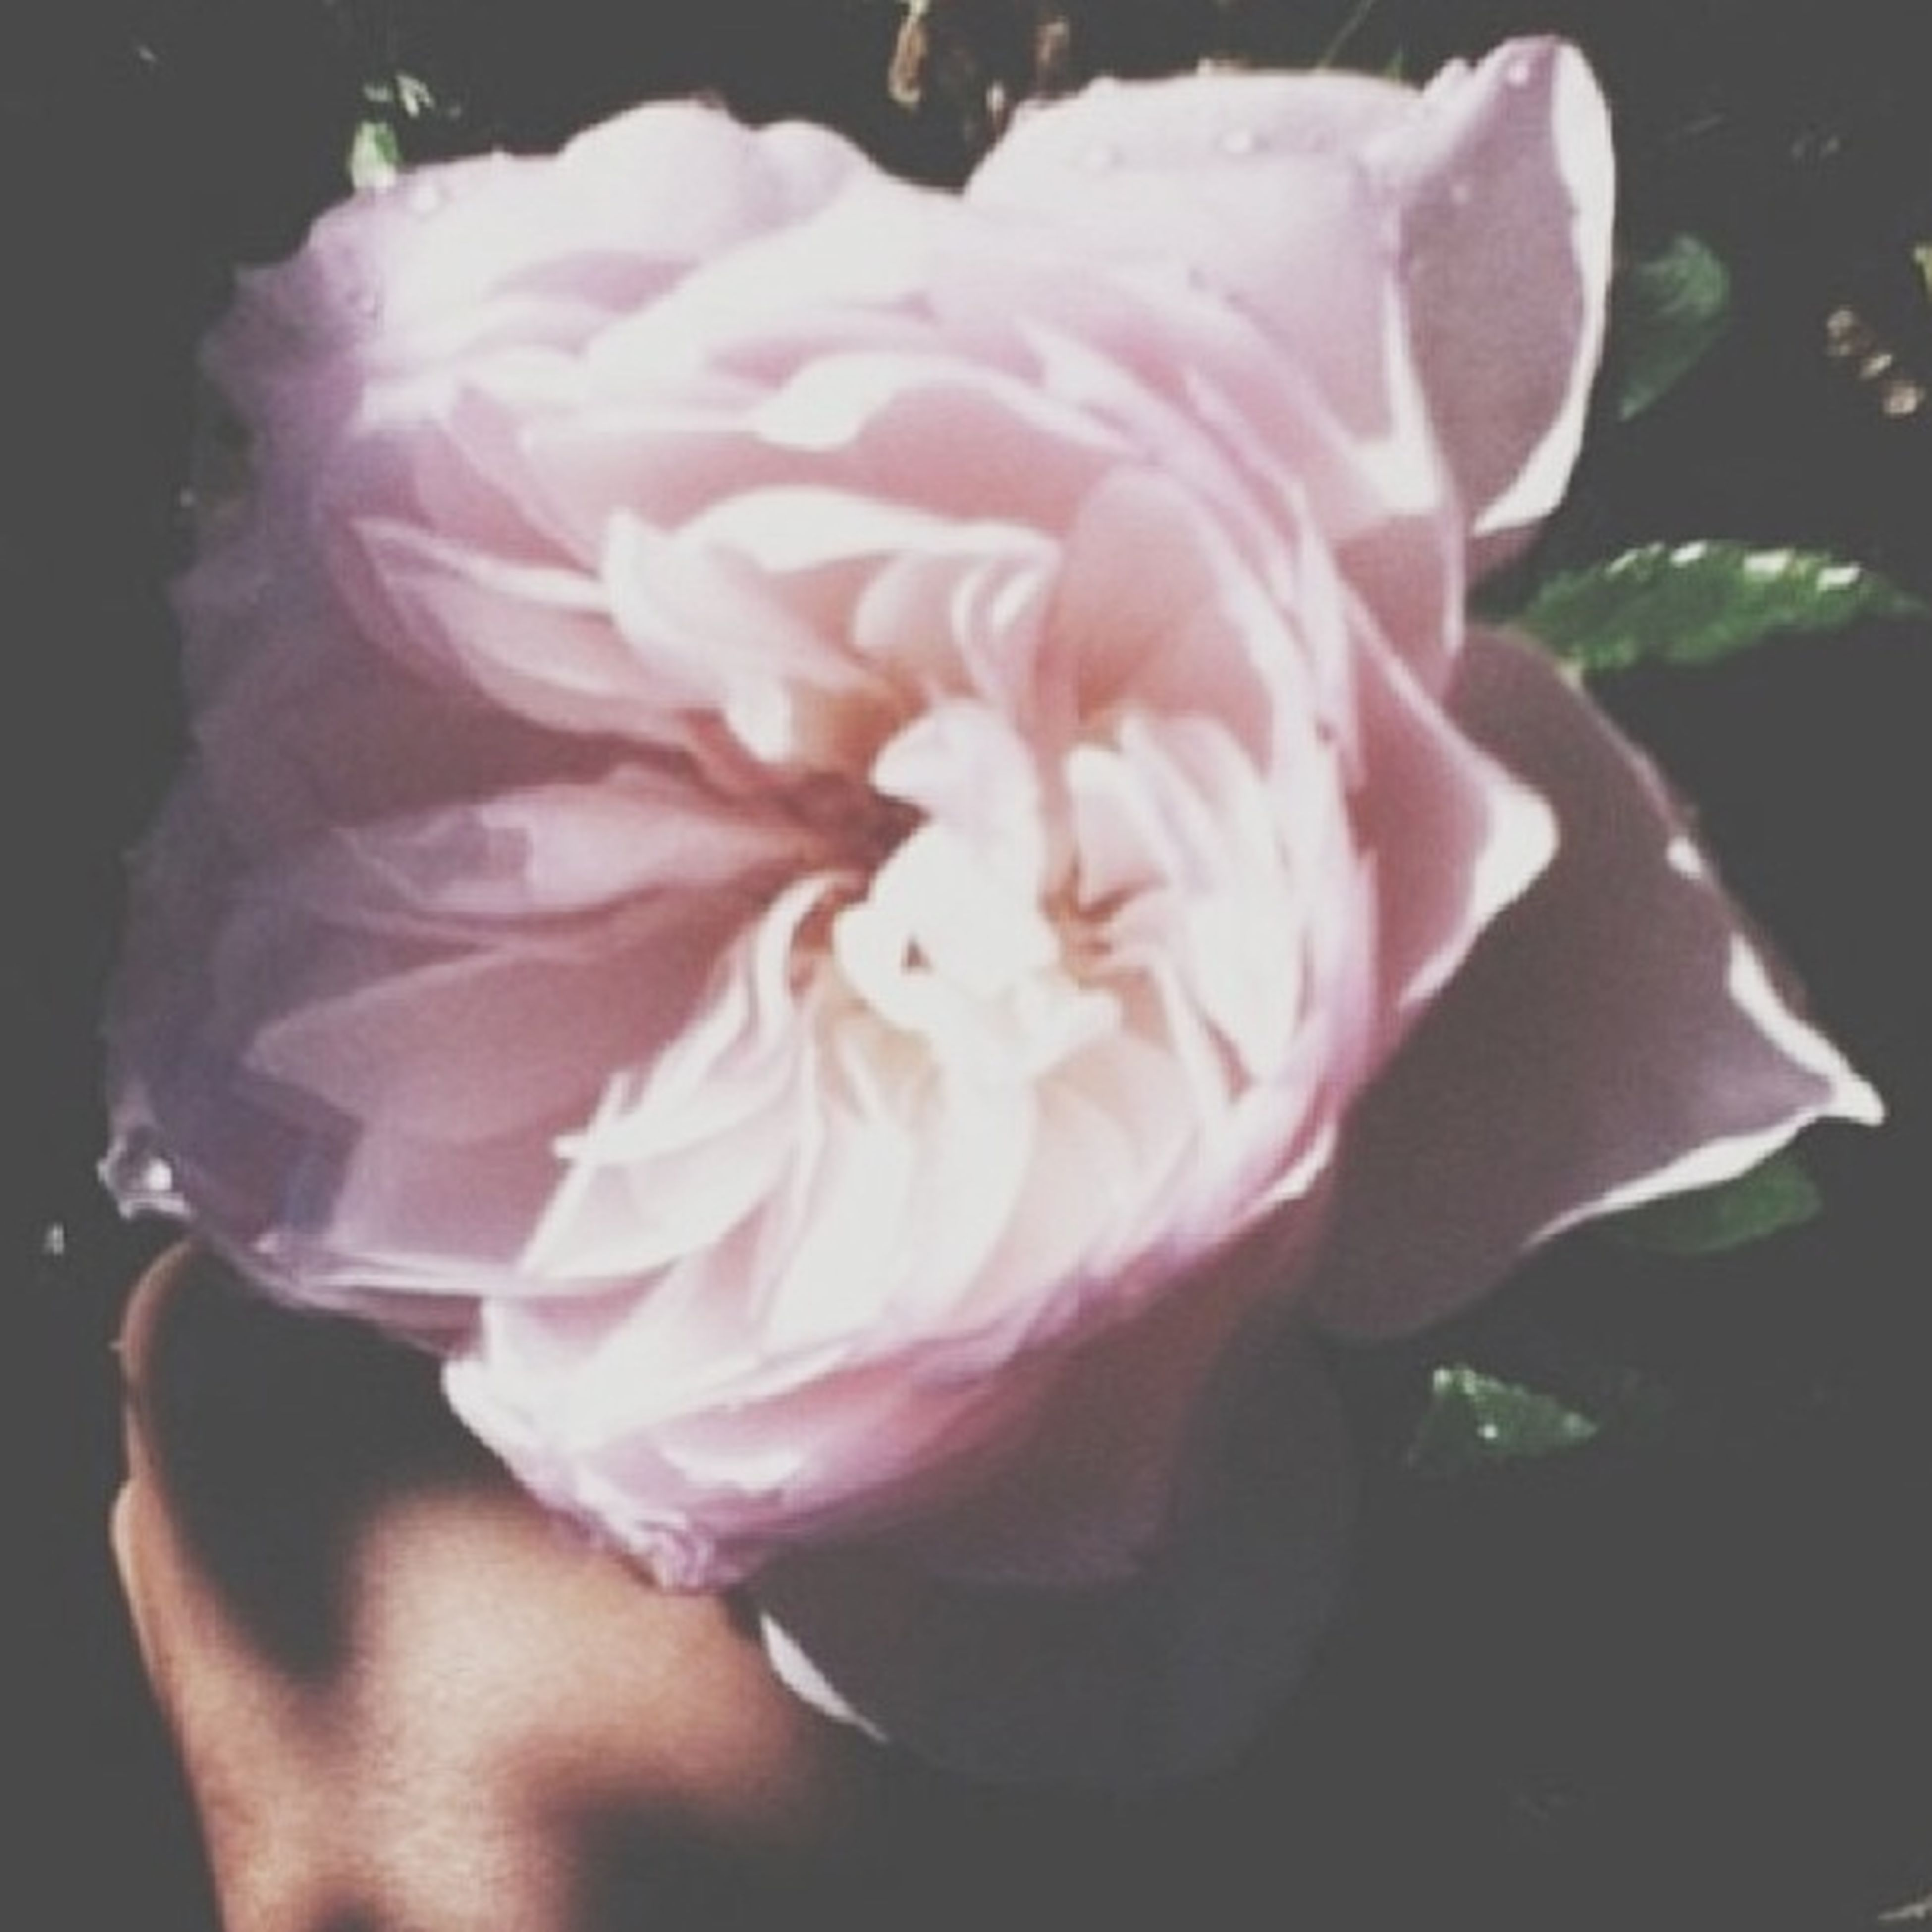 flower, petal, freshness, flower head, rose - flower, fragility, pink color, beauty in nature, close-up, single flower, rose, nature, blooming, water, high angle view, pink, white color, indoors, growth, in bloom